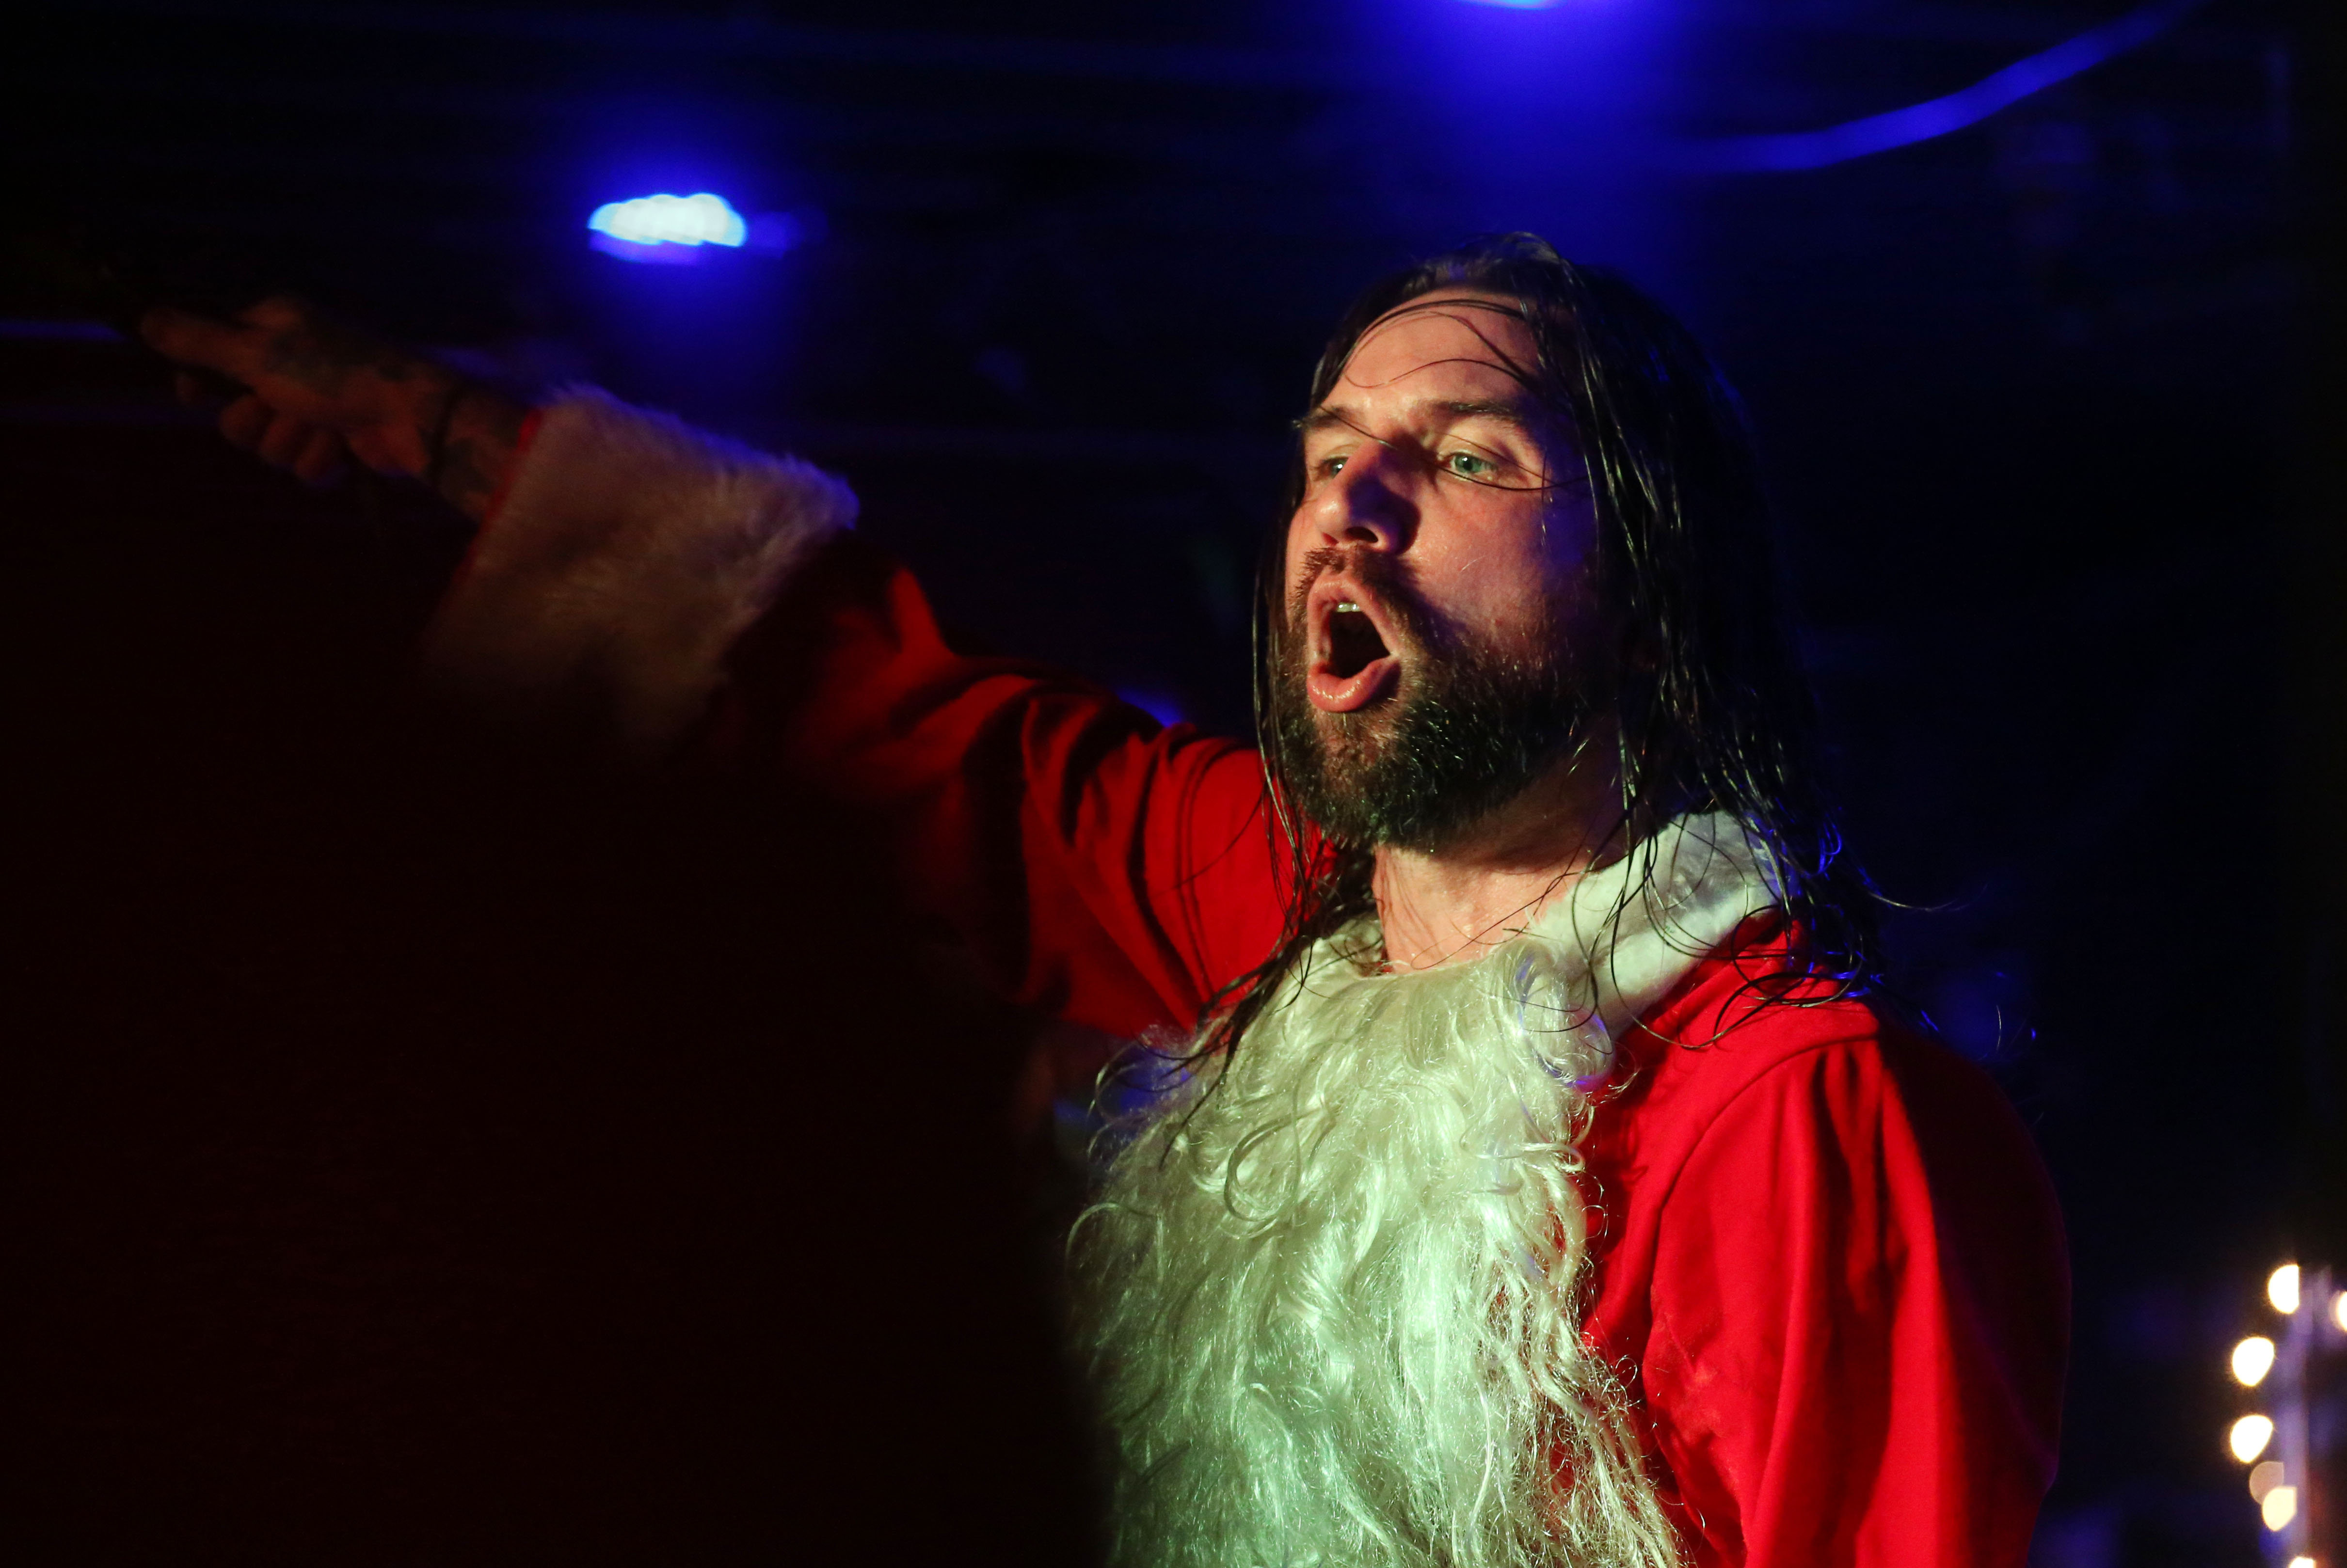 Keith Buckley and Every Time I Die return home again for their annual Christmas show. (Sharon Cantillon/Buffalo News file photo)